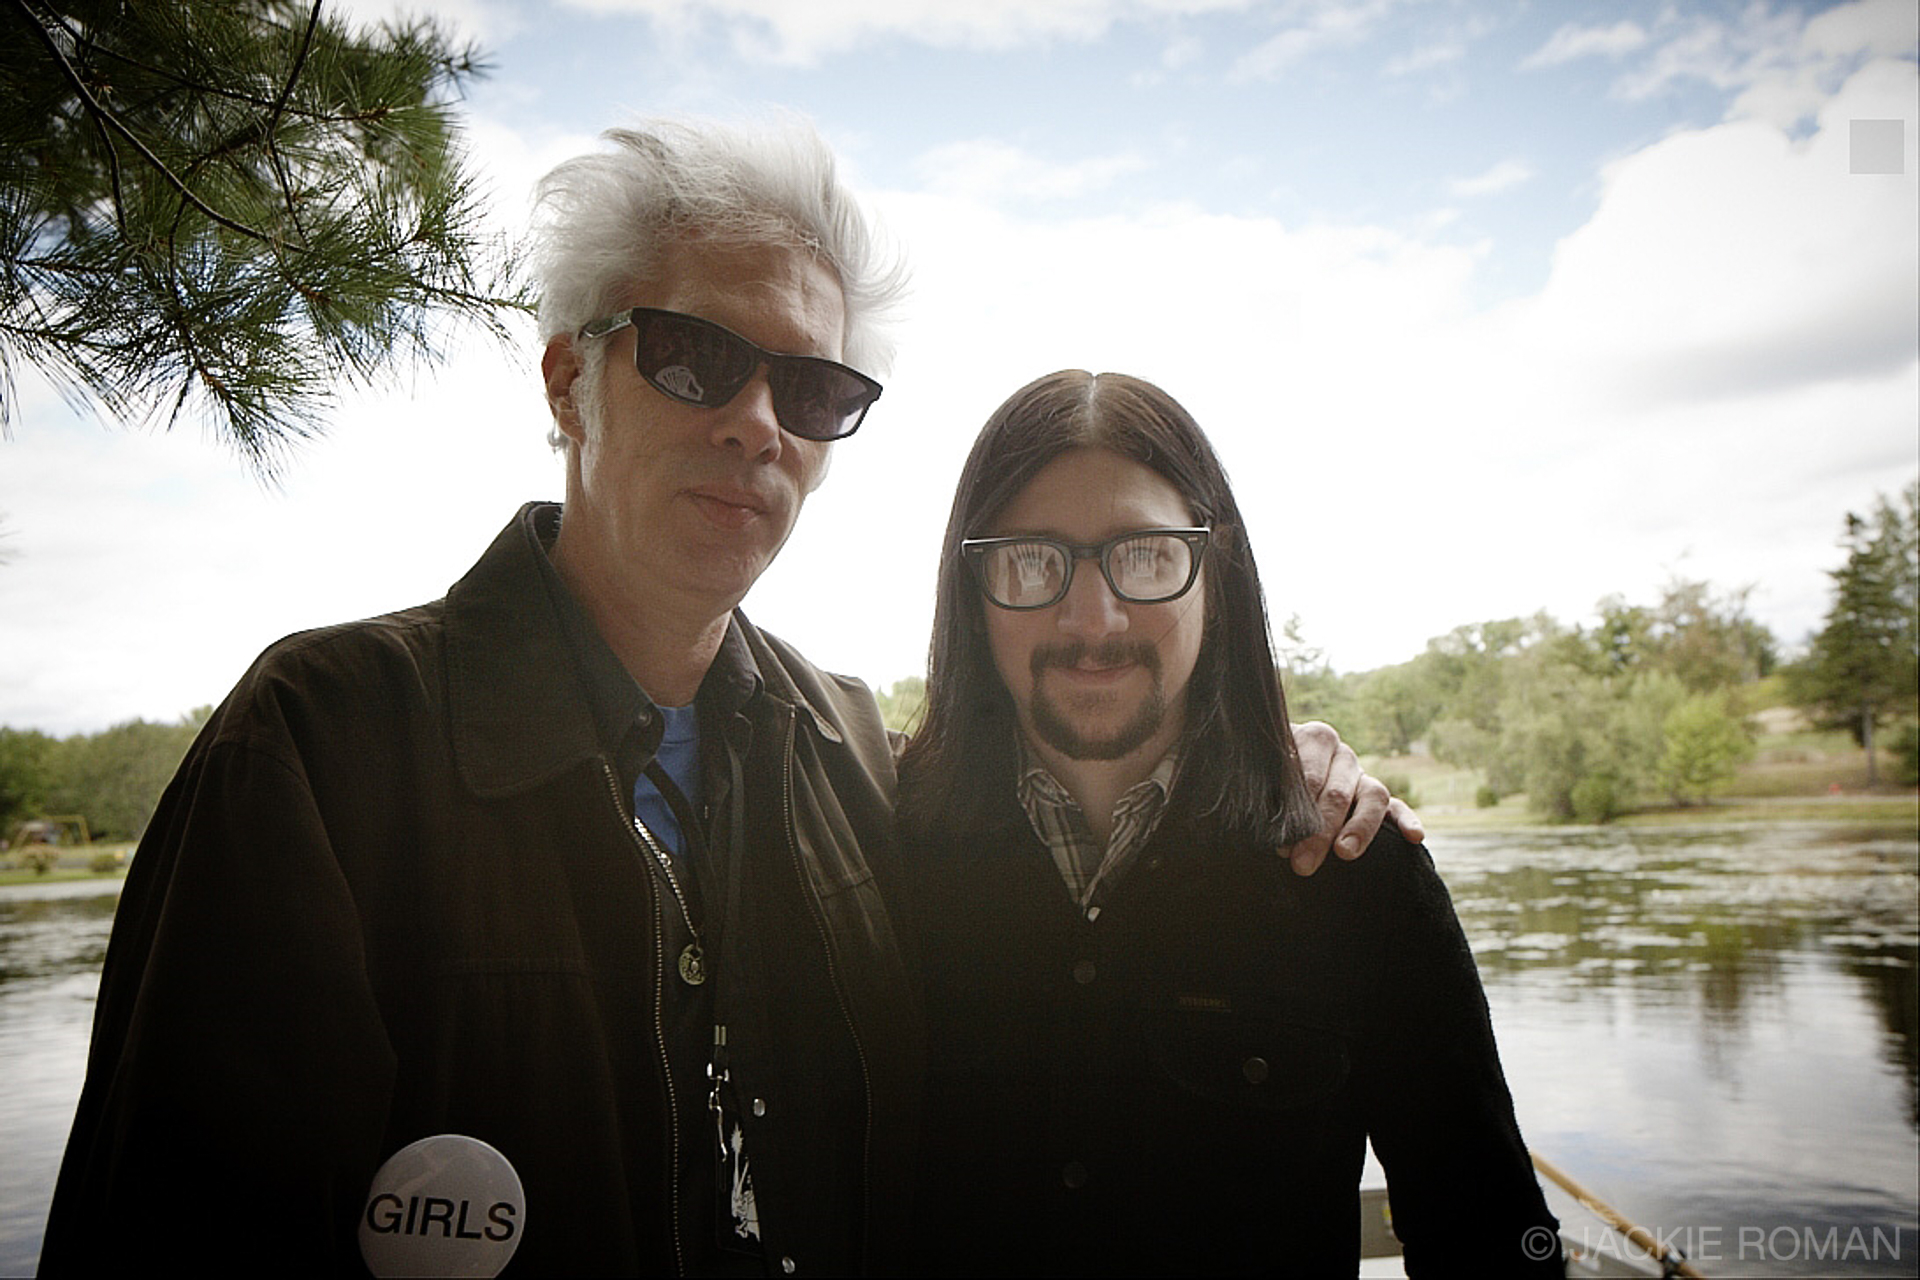 Jim Jarmusch and Jack Lawrence at the All Tomorrow's Parties  festival in Monticello, NY, September 5th, 2010.